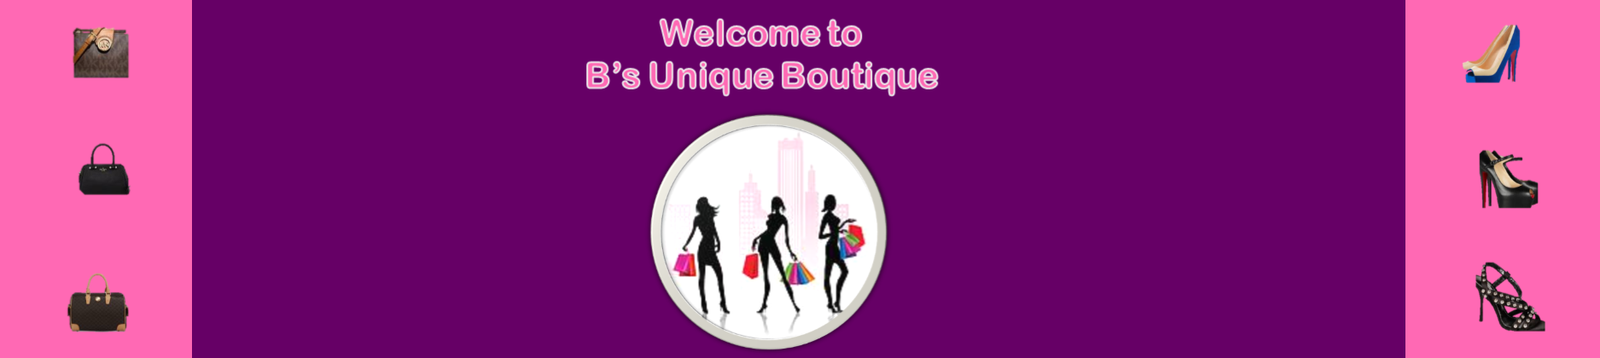 B's Unique Boutique